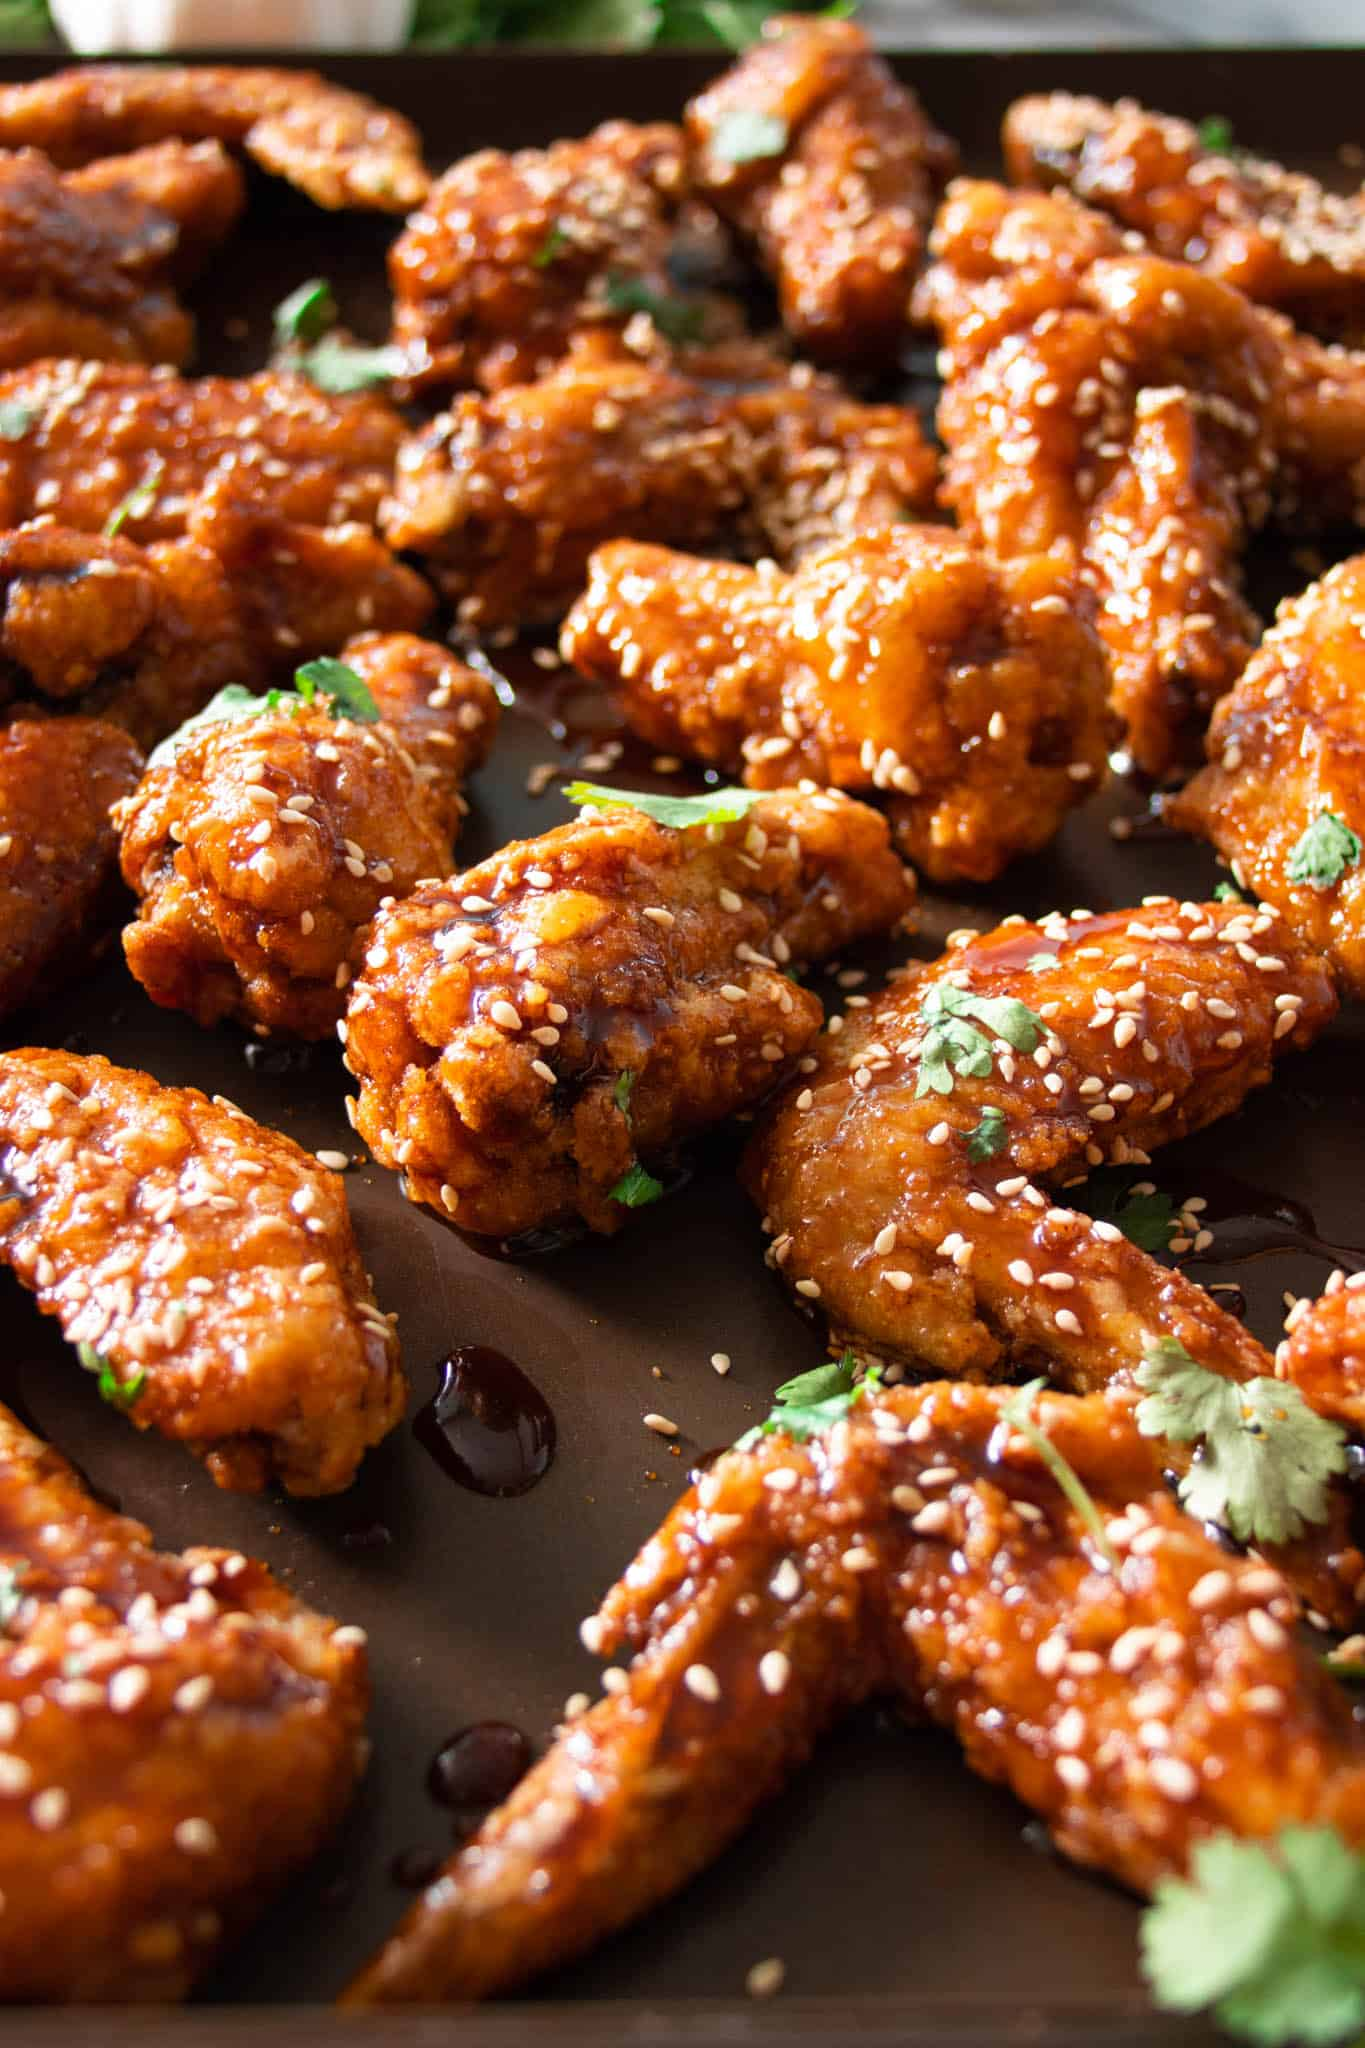 Korean-style soy and honey garlic fried chicken